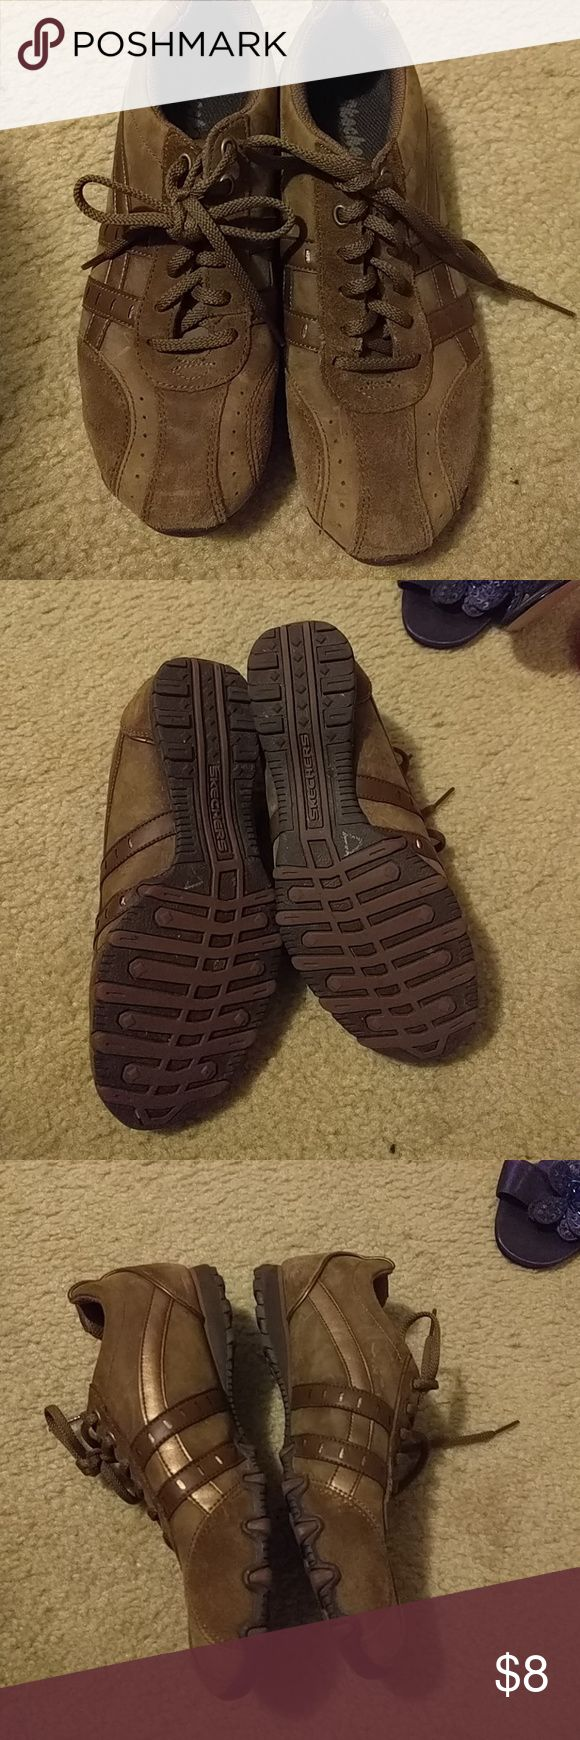 Sketchers Brown athletic shoes Wore a couple times with jeans, excellent condition Skechers Shoes Athletic Shoes